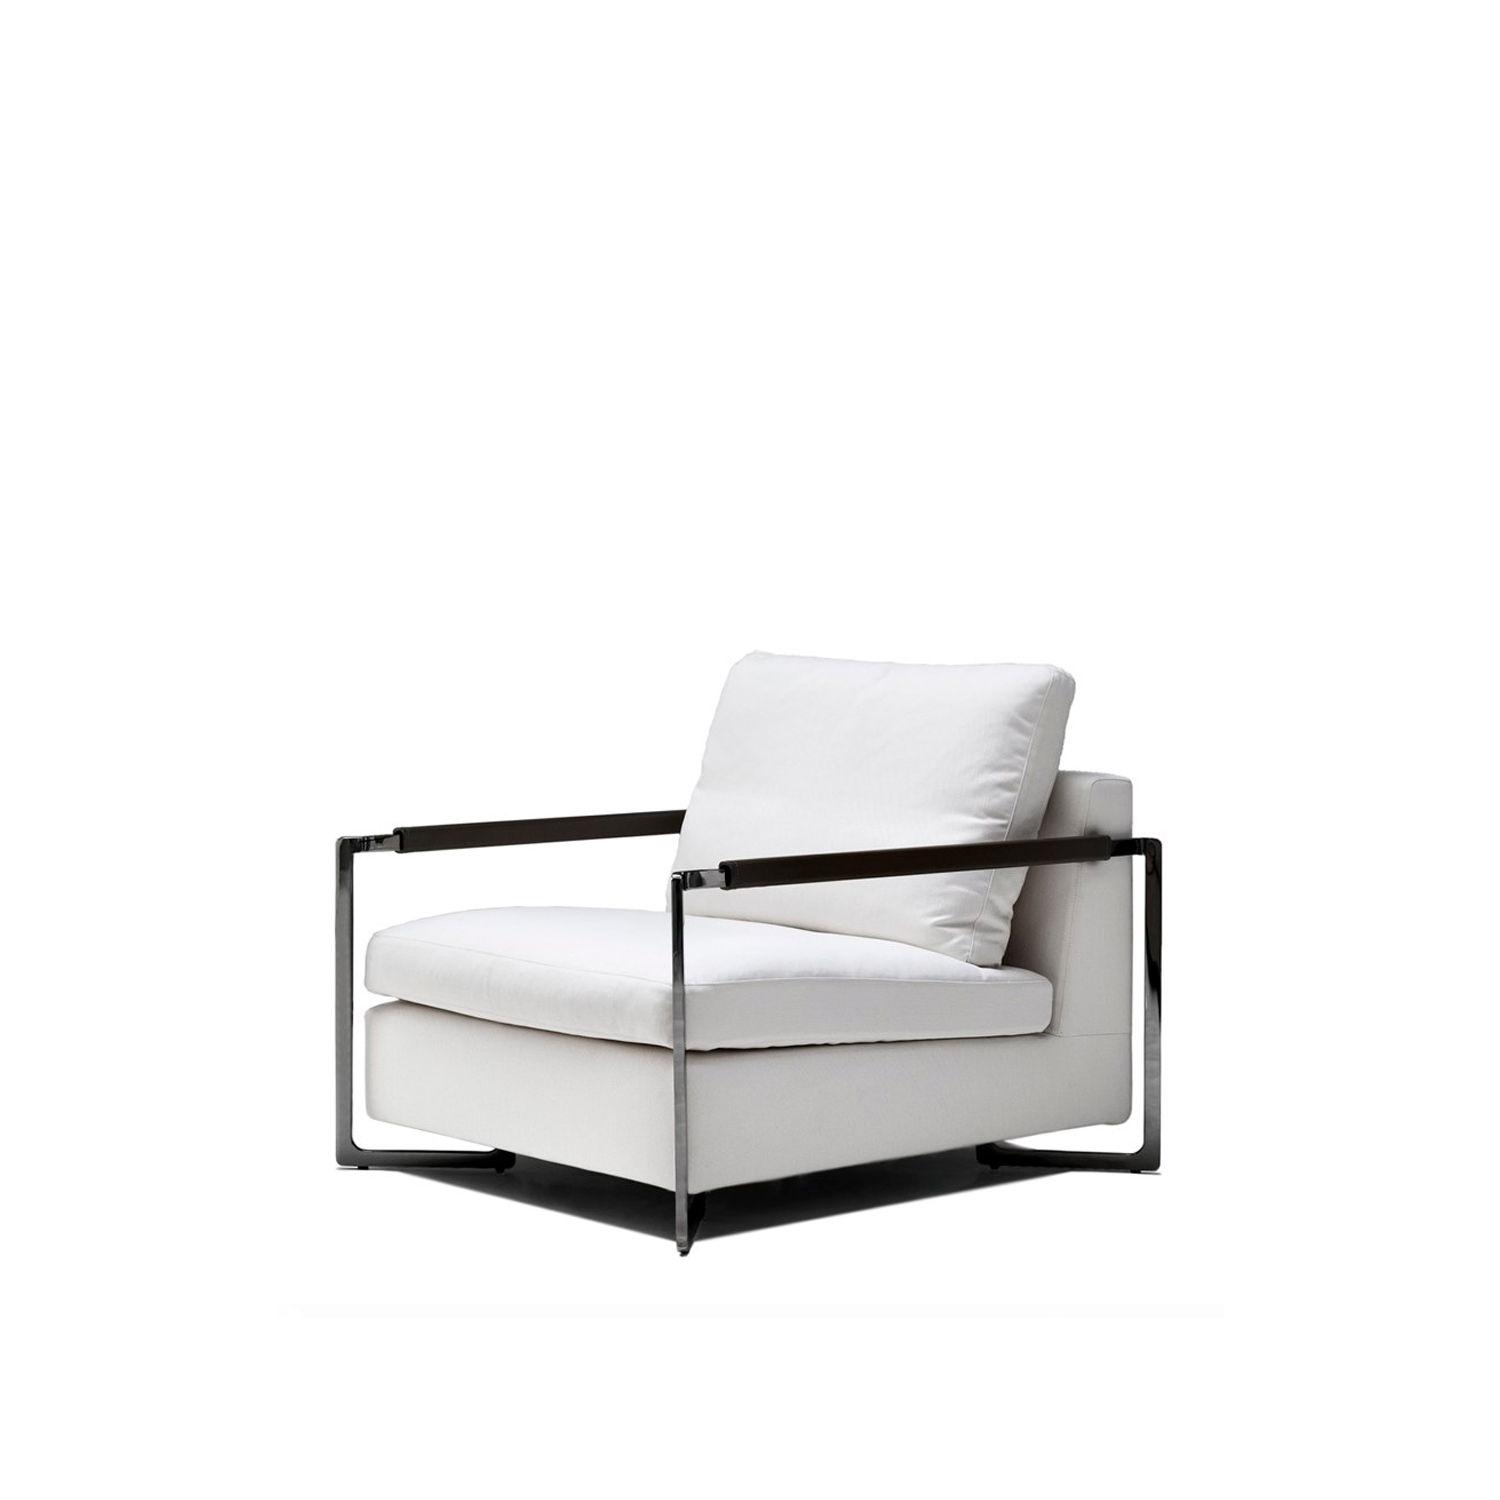 No Logo Light Lounge Chiar - No logo light features a dual soul, both masculine and feminine, which enables this collection of two- and three- seater sofas and a comfortable armchair to fit equally seamlessly into the cosiest of family homes and into the most rigorous of public spaces. Its most striking features are the austerity of the steel frame and the unexpectedly comfortable seat cushion. In production since 2005, No logo light places itself squarely at the centre of everyday life, always drawing attention to itself, yet with the utmost discretion. Fully removable covers.  Additional removable cover is available, please enquire for prices.  Materials: Structure in wood padded with variable-density polyurethane foam and covered with velfodera on a polyester fiber. The seat is sprung with elastic straps reinforced with polypropylene. Feet in shaped metal in black nickel finished. Armrest is covered with leather profile. Seat cushion is in washed and sterilized goose down divide into compartments, covered with 100% white cotton fabric and with a polyurethane foam core. Back cushion is in washed and sterilized goose down divided into compartments and covered with 100% cotton fabric anti-feather. | Matter of Stuff